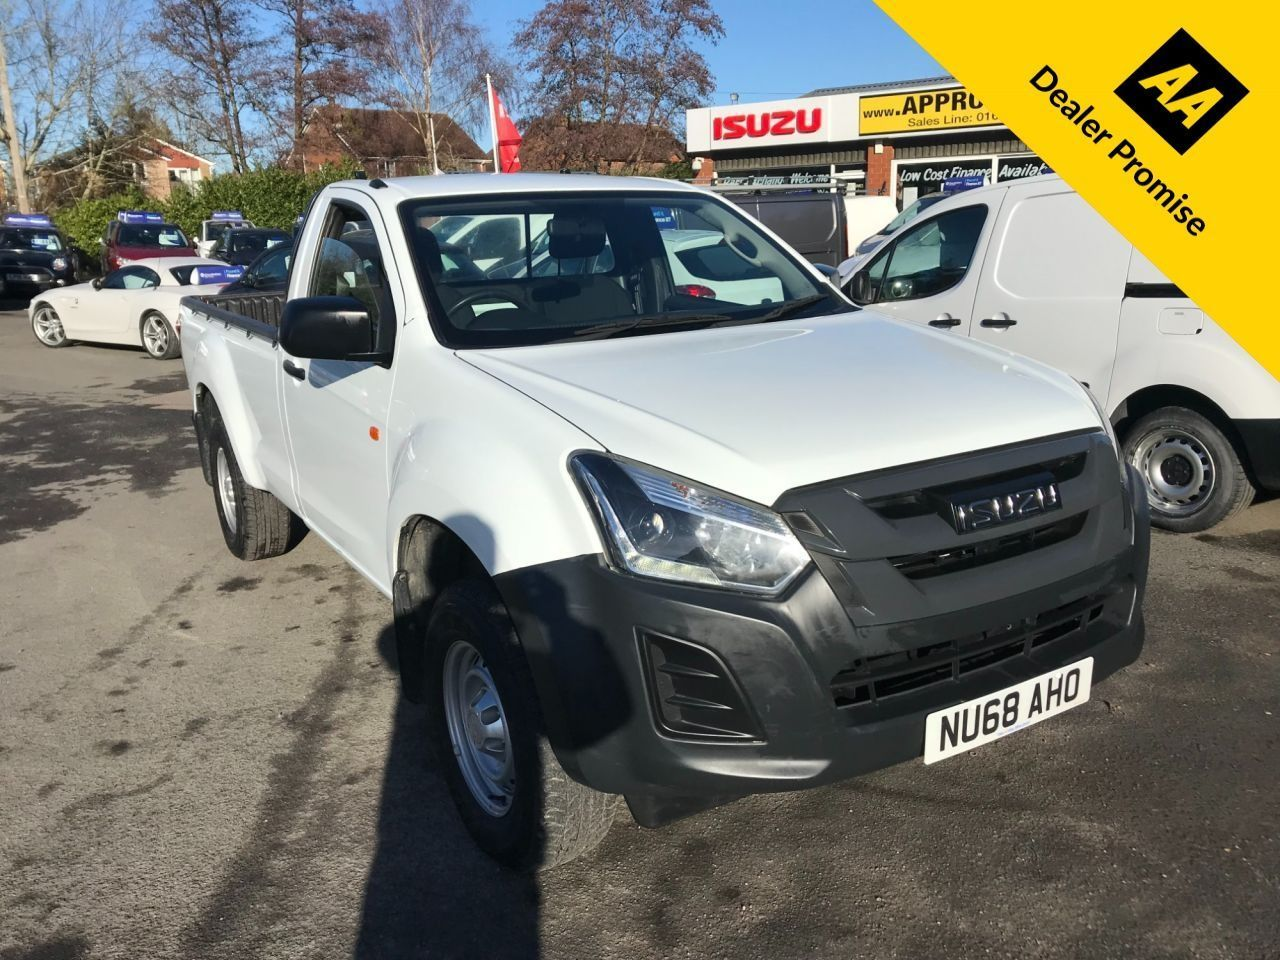 Isuzu D Max Utility Used Cars For Sale Autotrader Uk